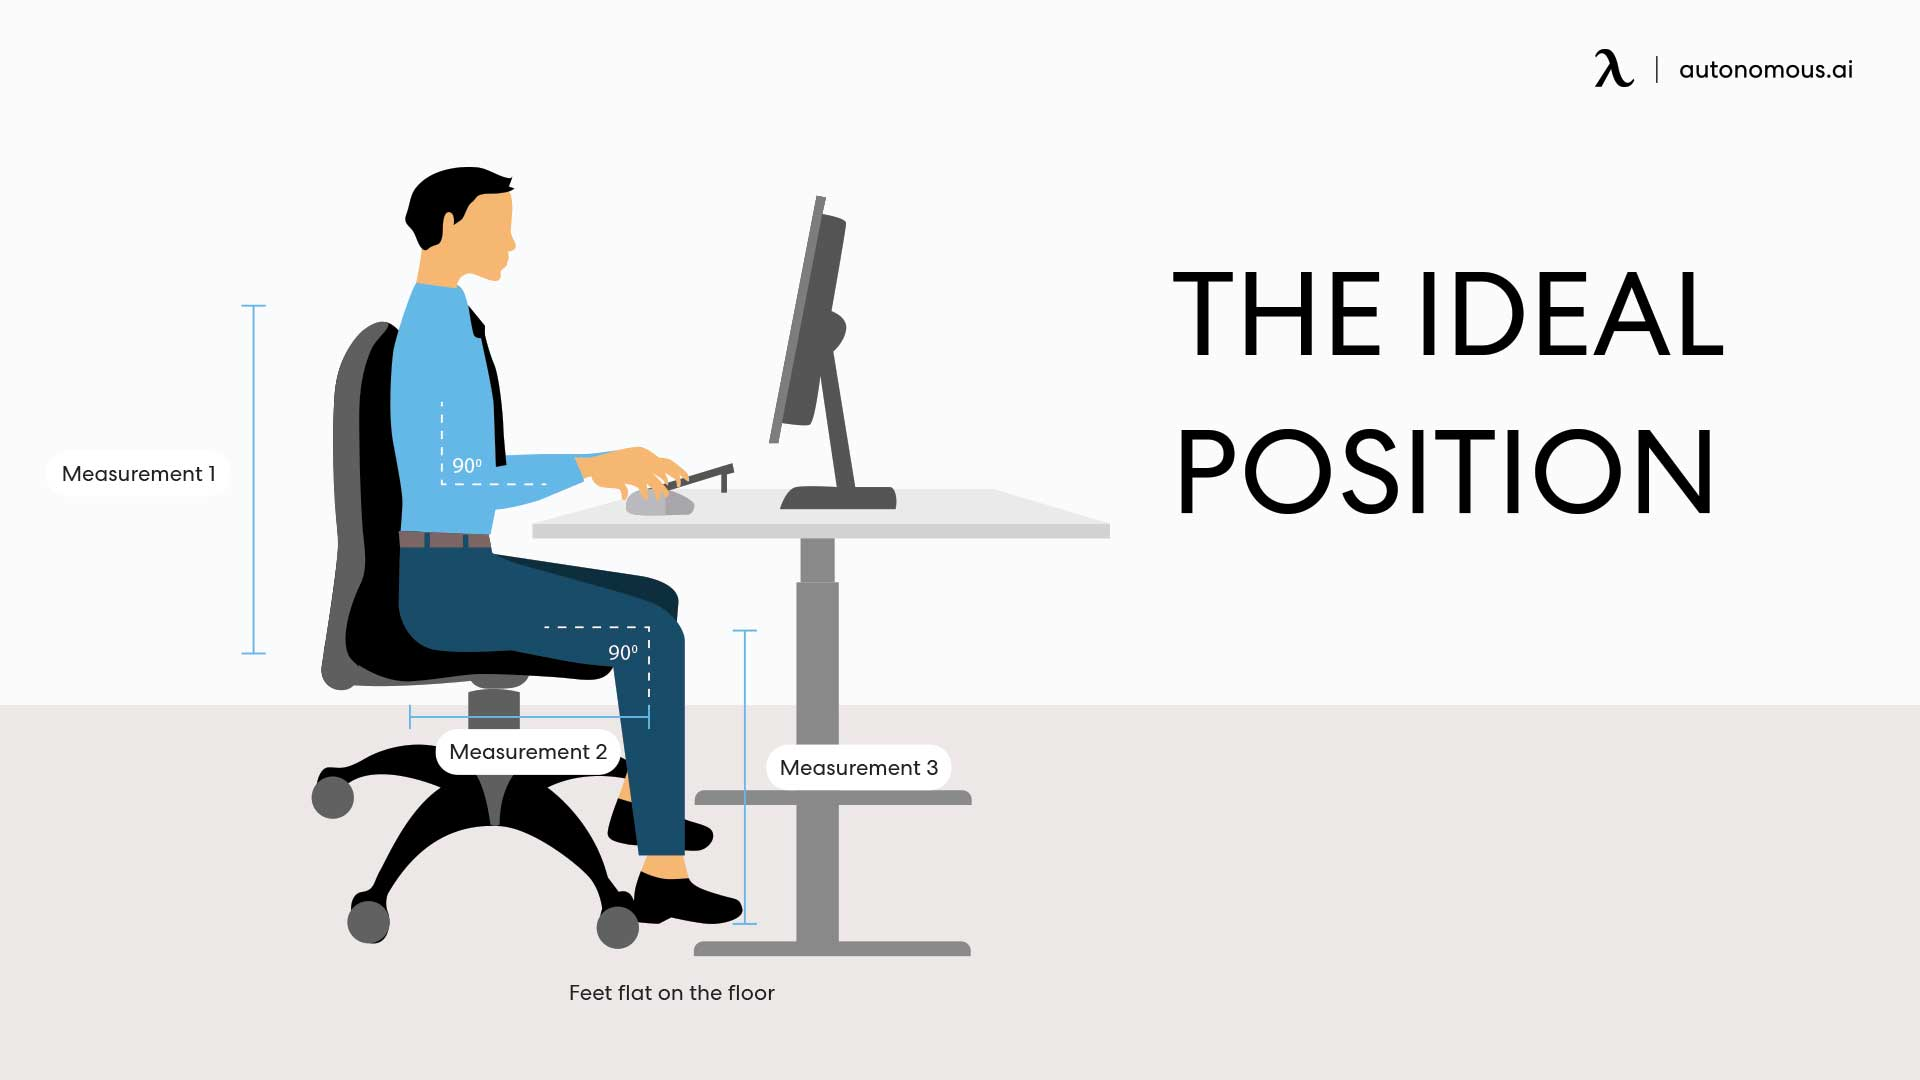 image relates to right posture